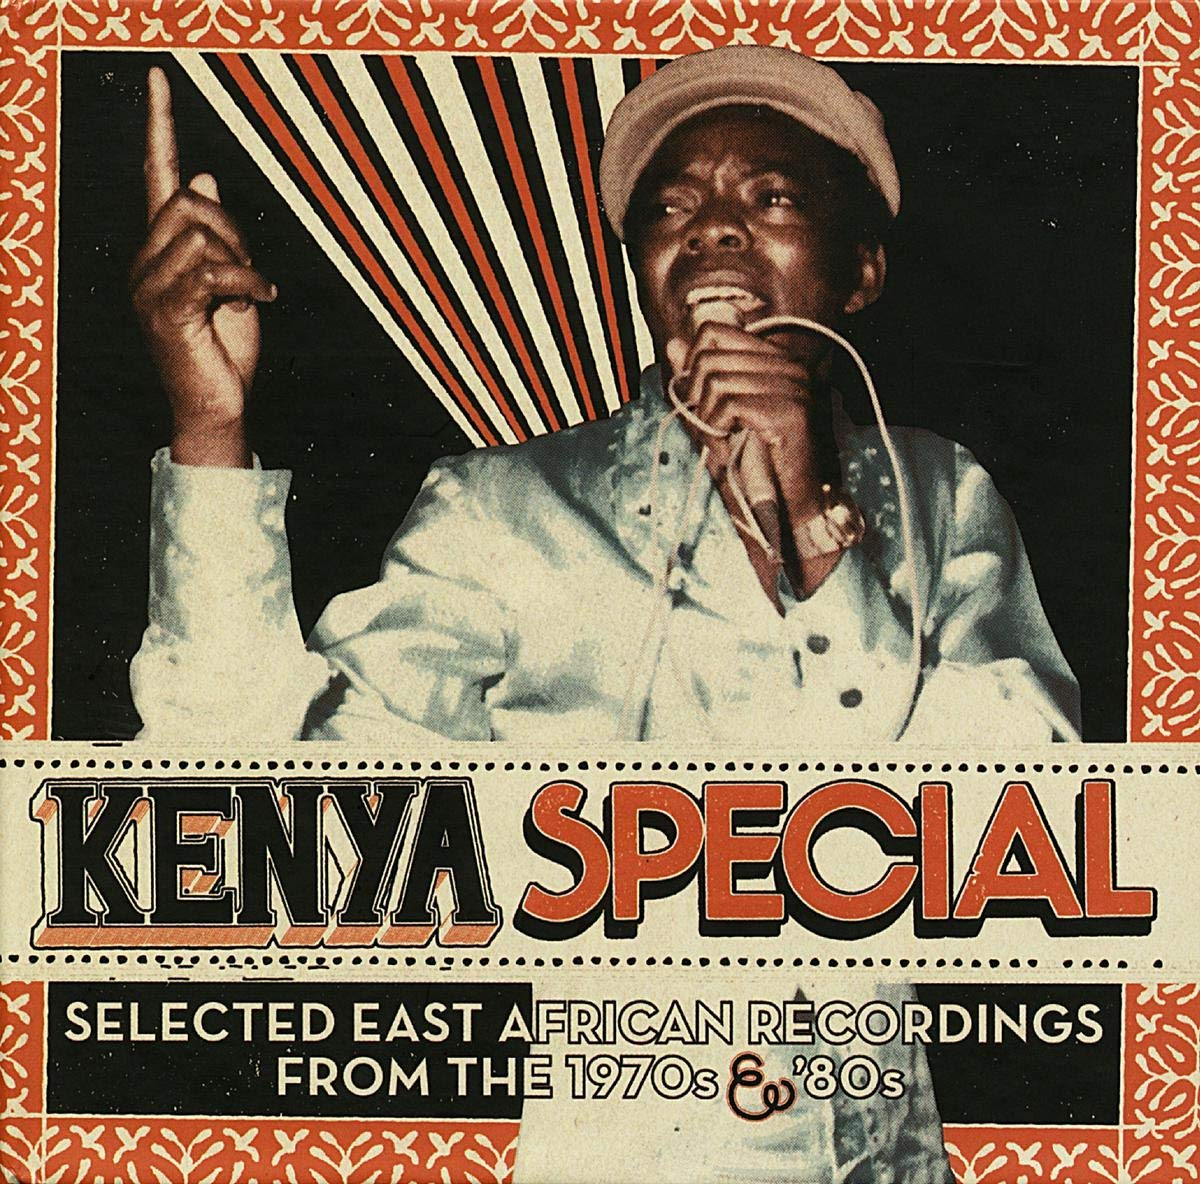 Kenya Special: Selected Over item handling ☆ East African from the 1970s Recordings Challenge lowest price